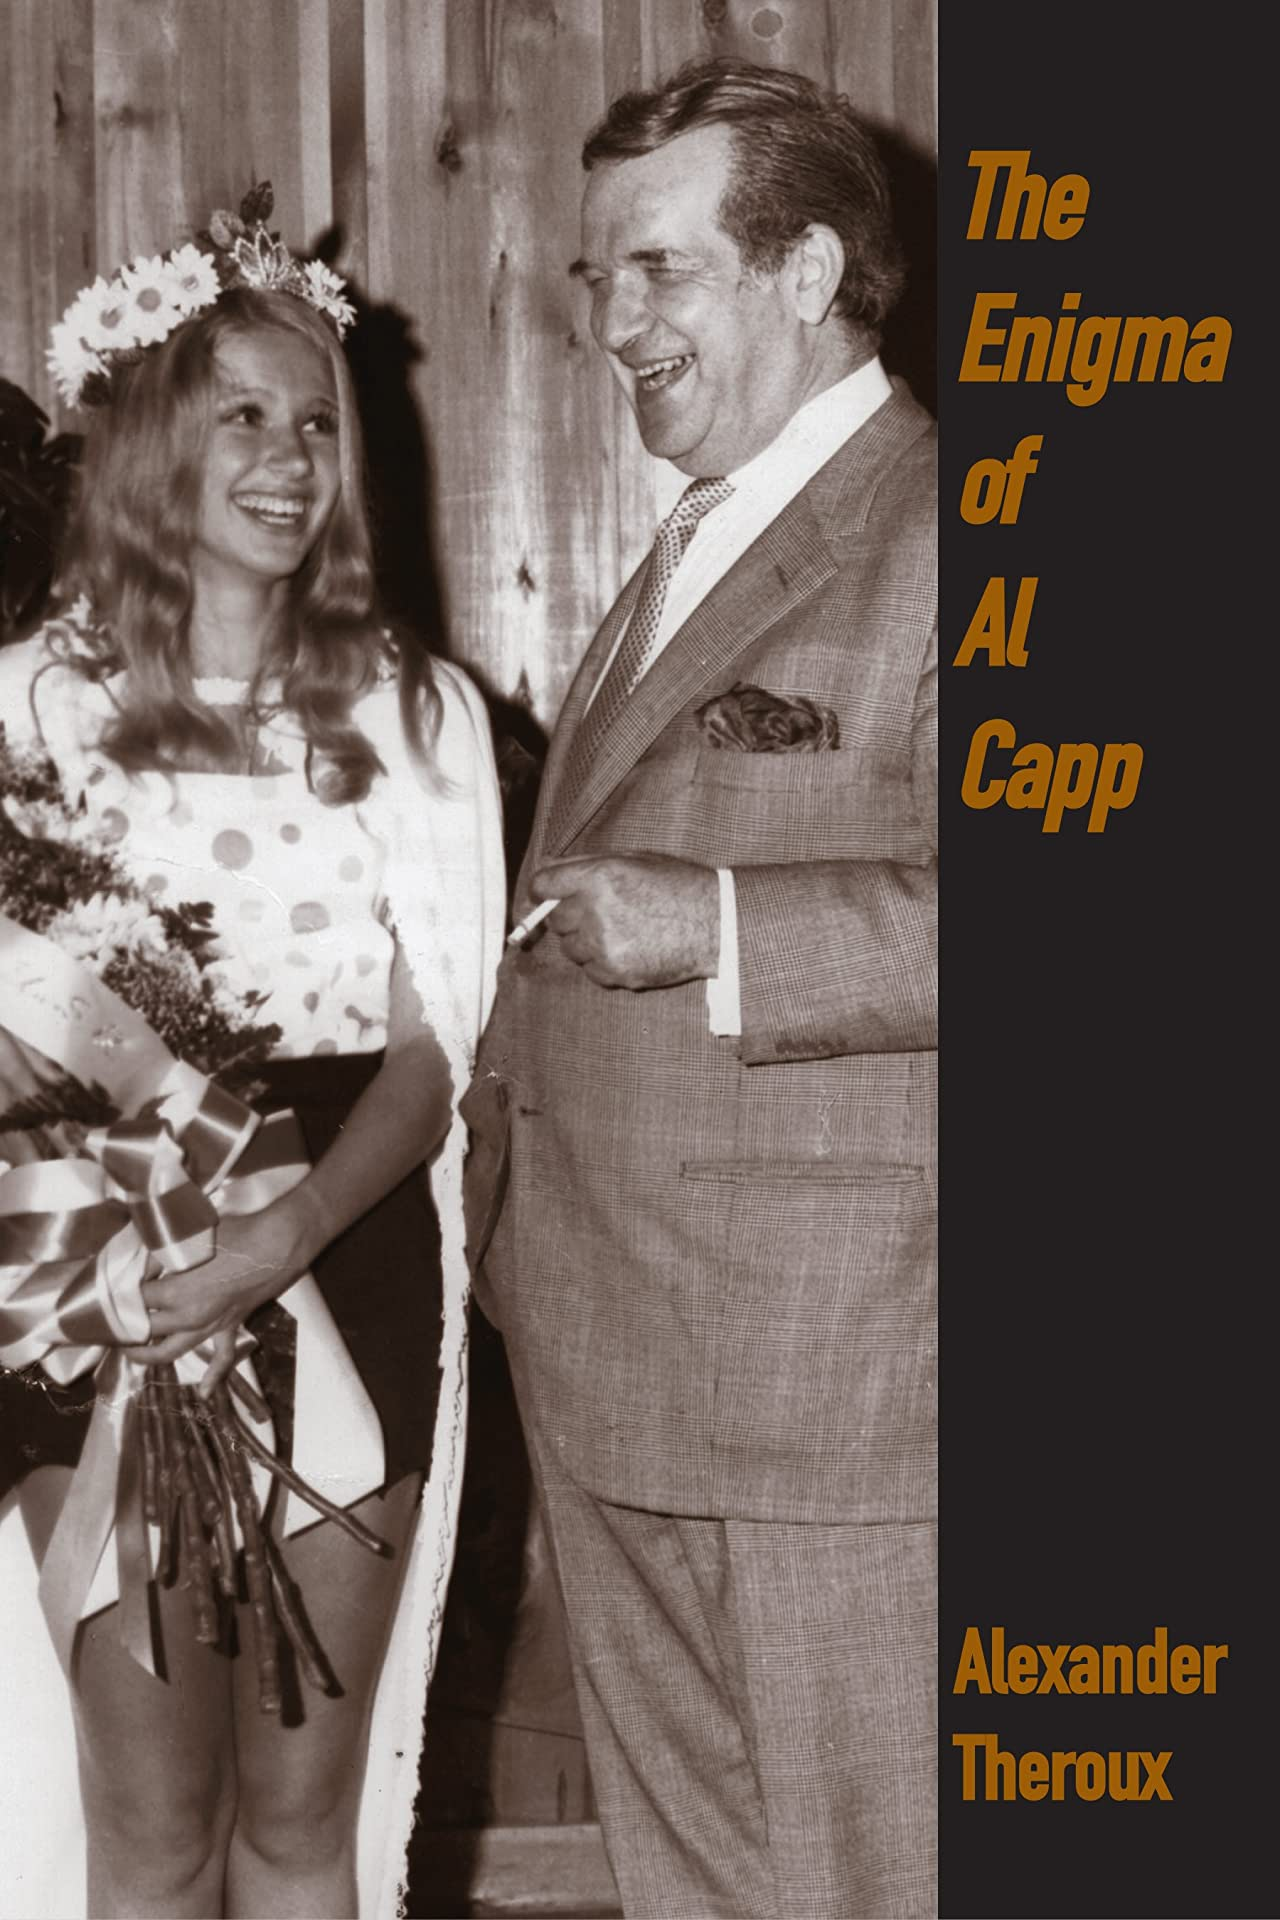 The Enigma of Al Capp